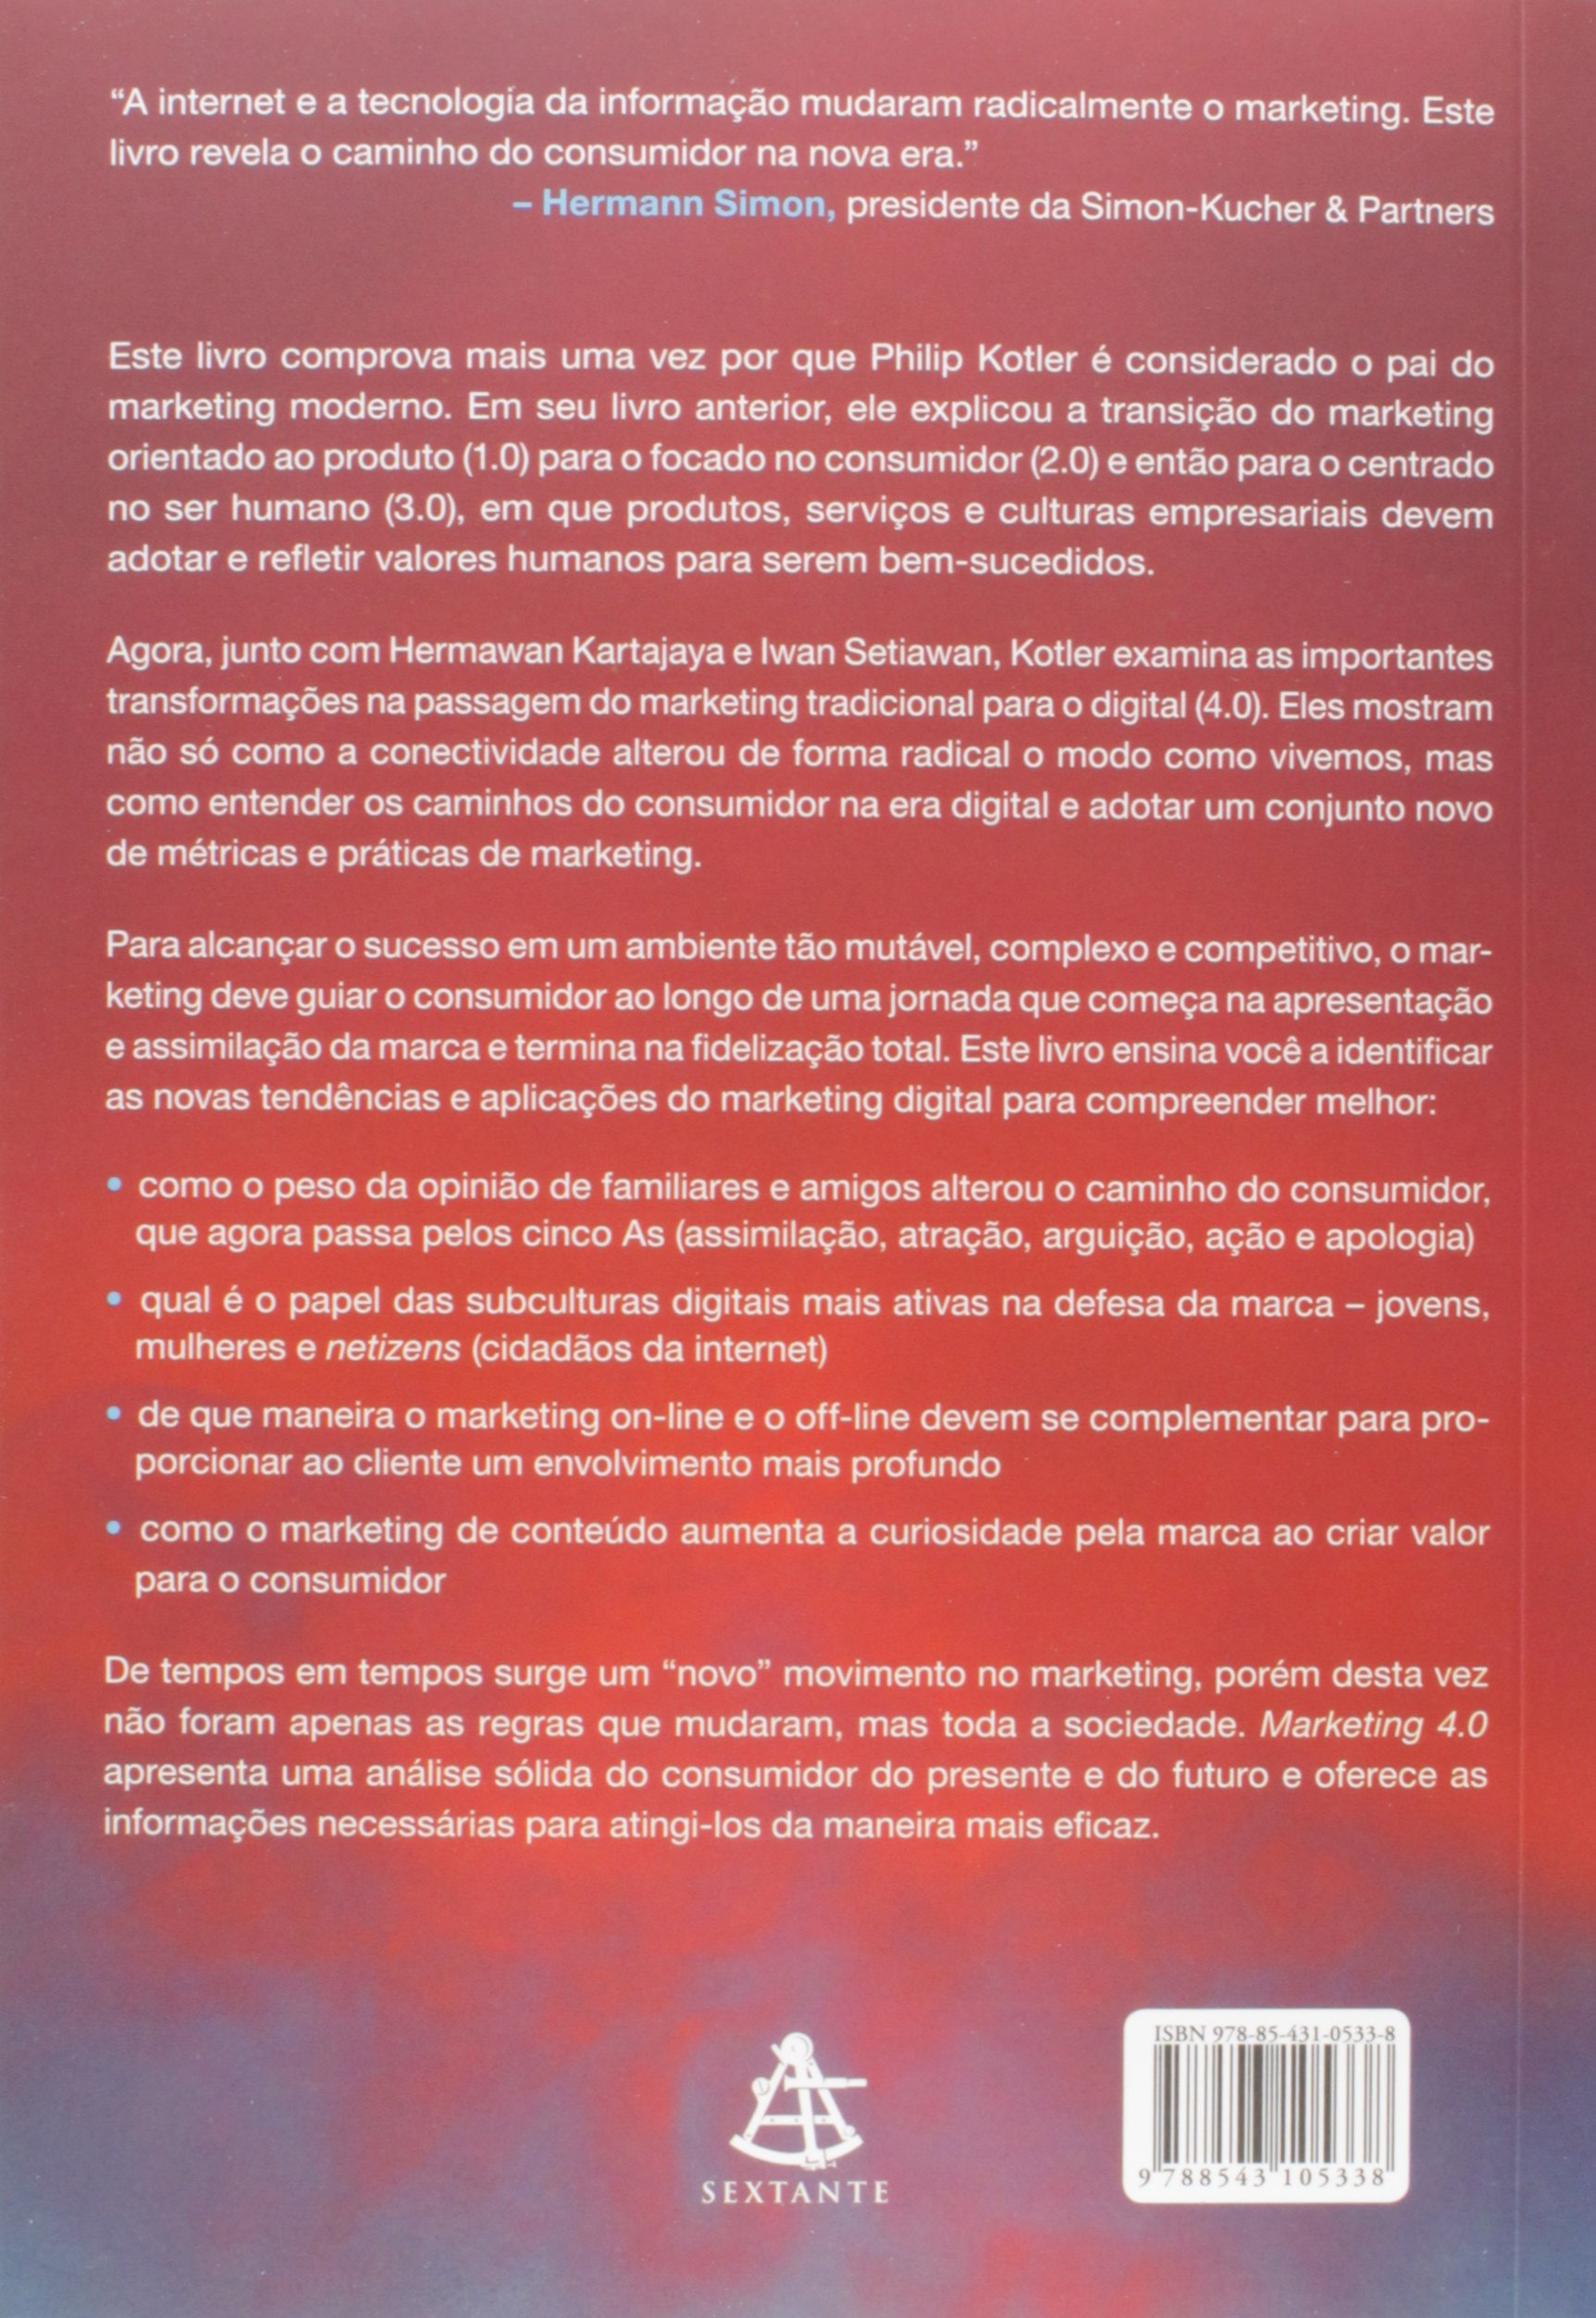 Marketing 4.0. Do Tradicional ao Digital: Philip Kotler: 9788543105338: Amazon.com: Books